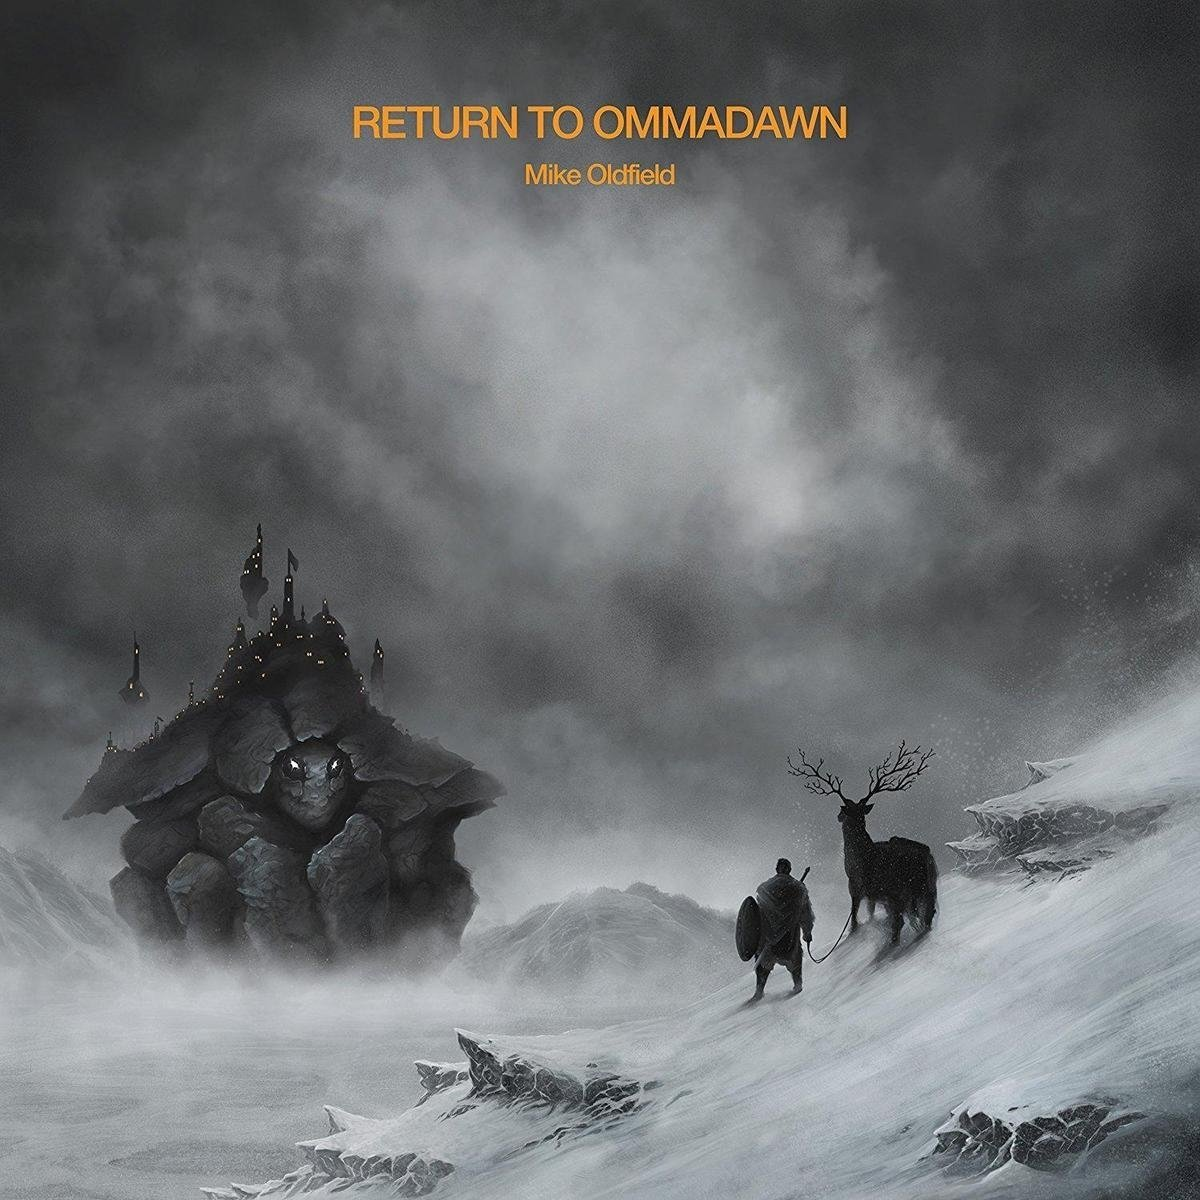 RETURN TO OMMADAWN [DVD:5.1SURROUND S.&STEREO MIXE - supermusic.sk